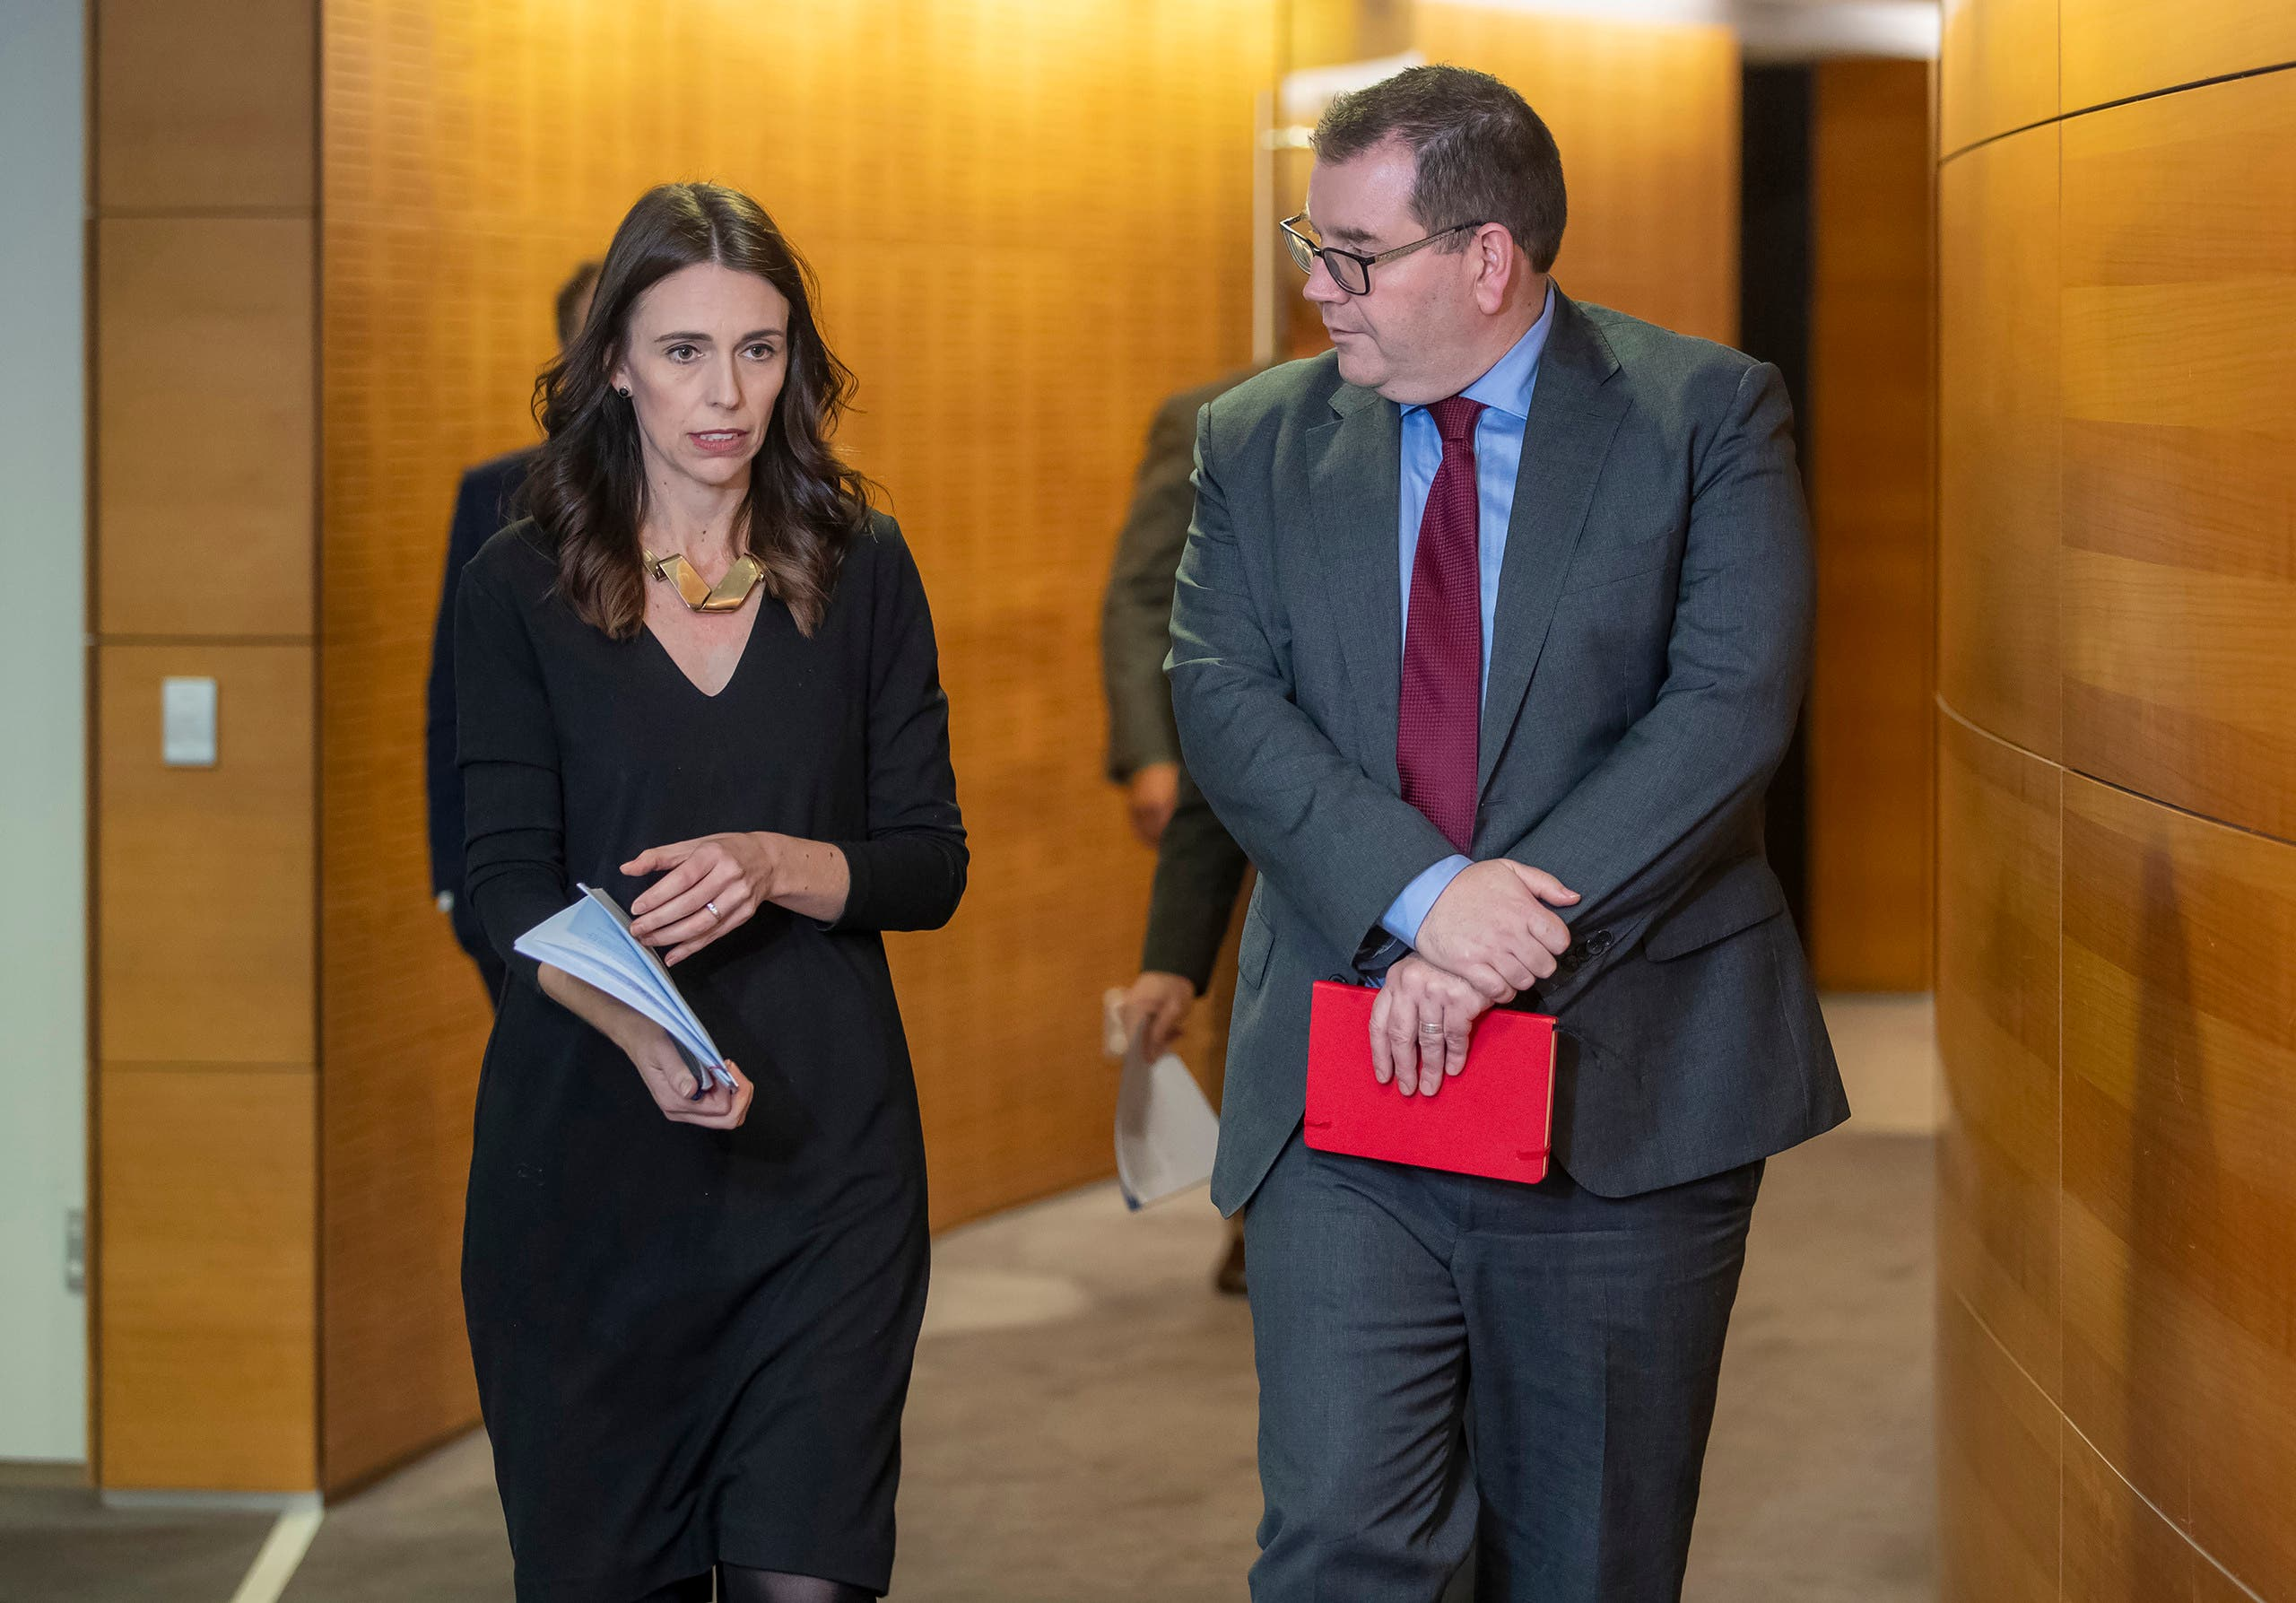 New Zealand Prime Minister Jacinda Ardern arriving for the post-Cabinet press conference with Finance Minister Grant Robertson in Wellington, New Zealand, on Monday May 11, 2020. (AP)